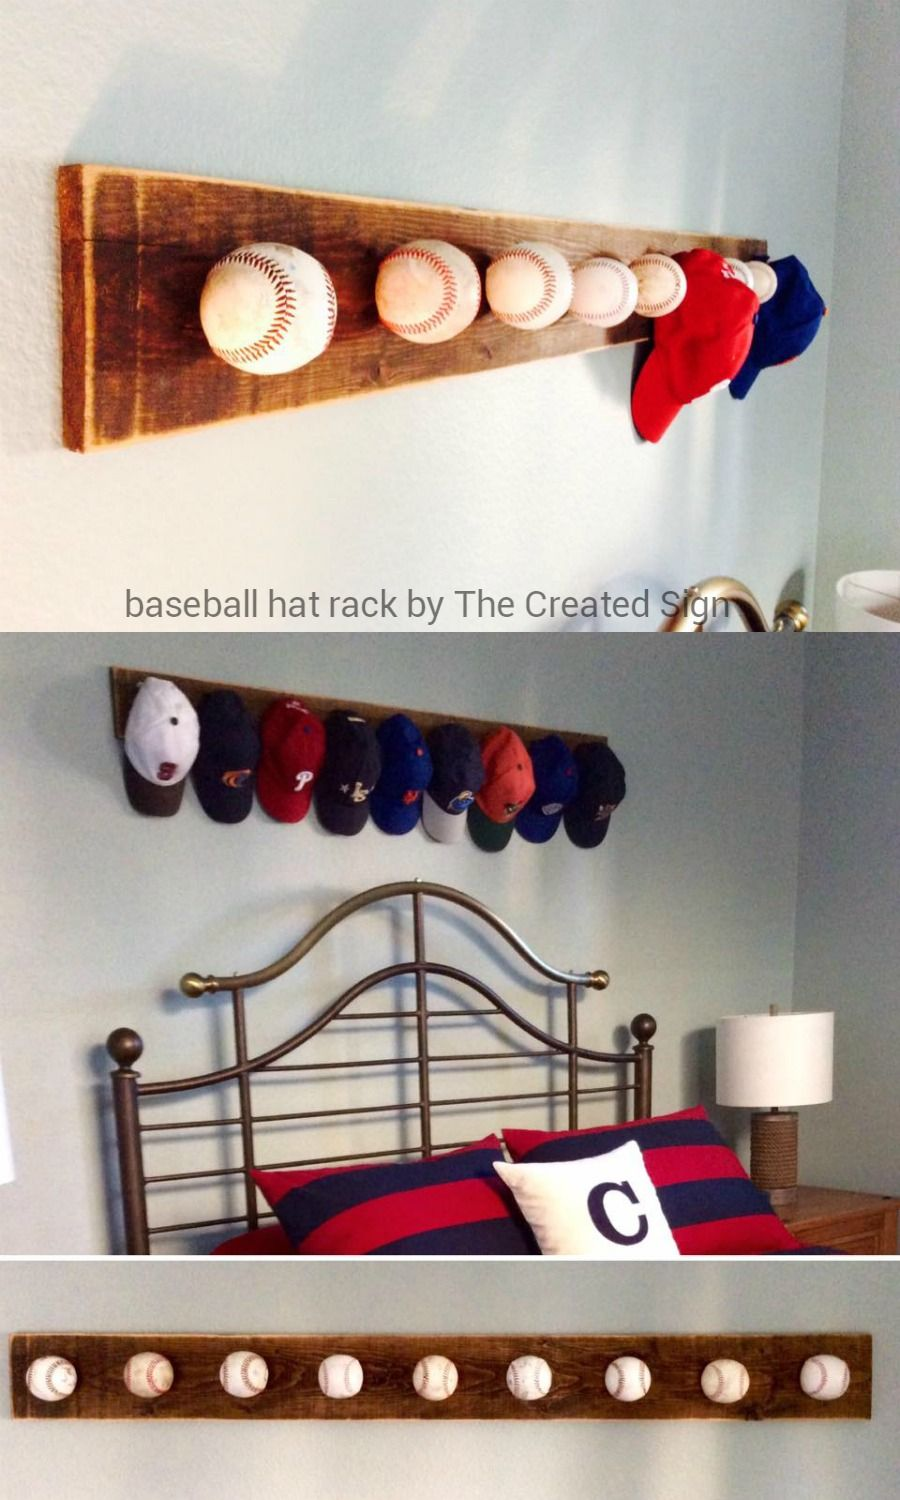 Hat Racks For Baseball Caps Awesome Baseballhatrackusinggameballsbythecreatedsignfeaturedon Inspiration